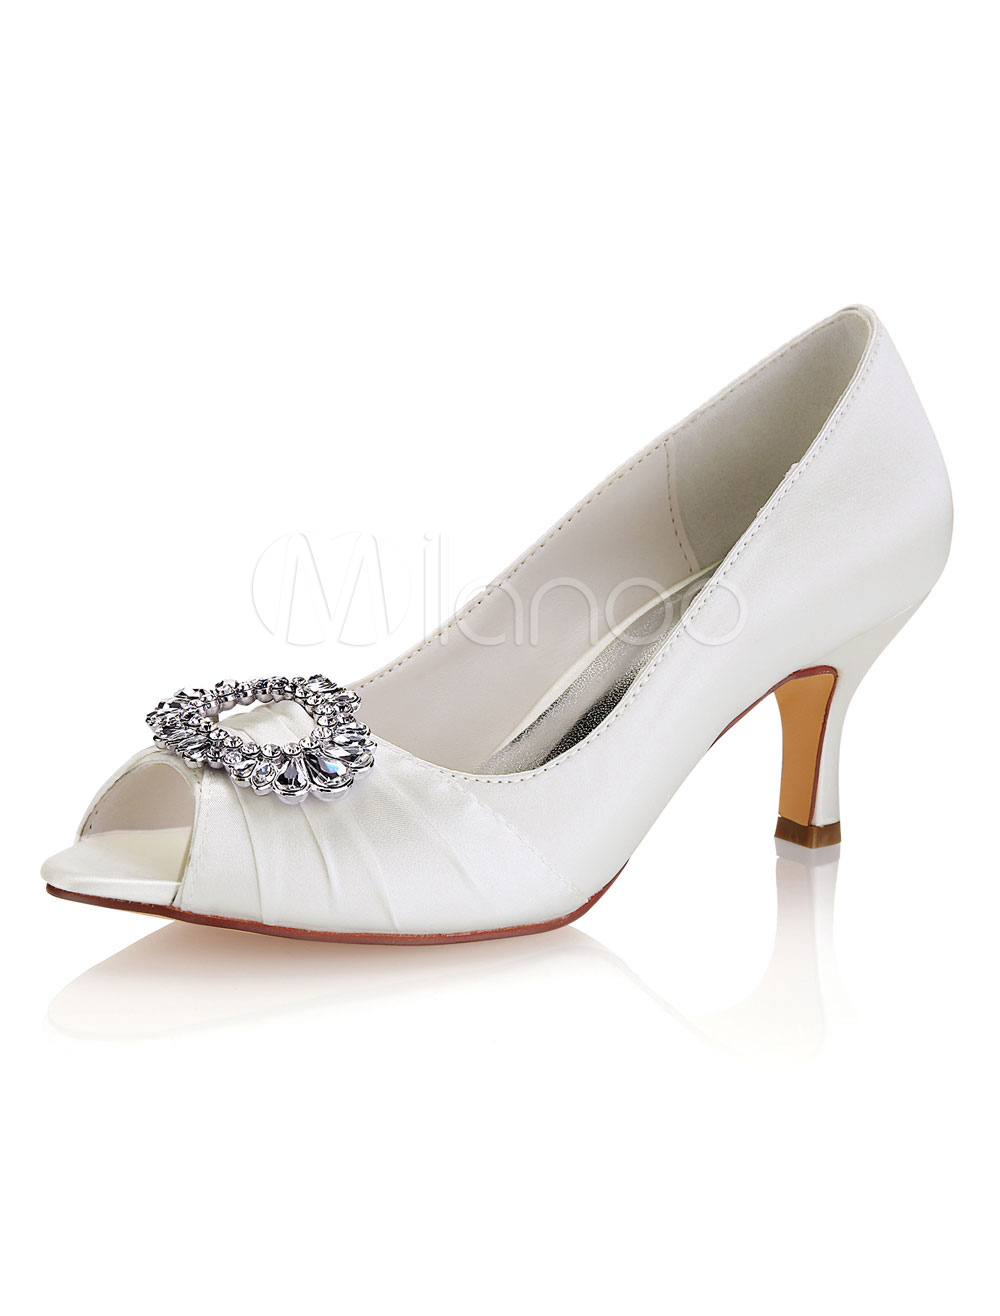 3ae28e9a572 Ivory Wedding Shoes Satin Peep Toe Rhinestones Mother Of The Bride Shoes